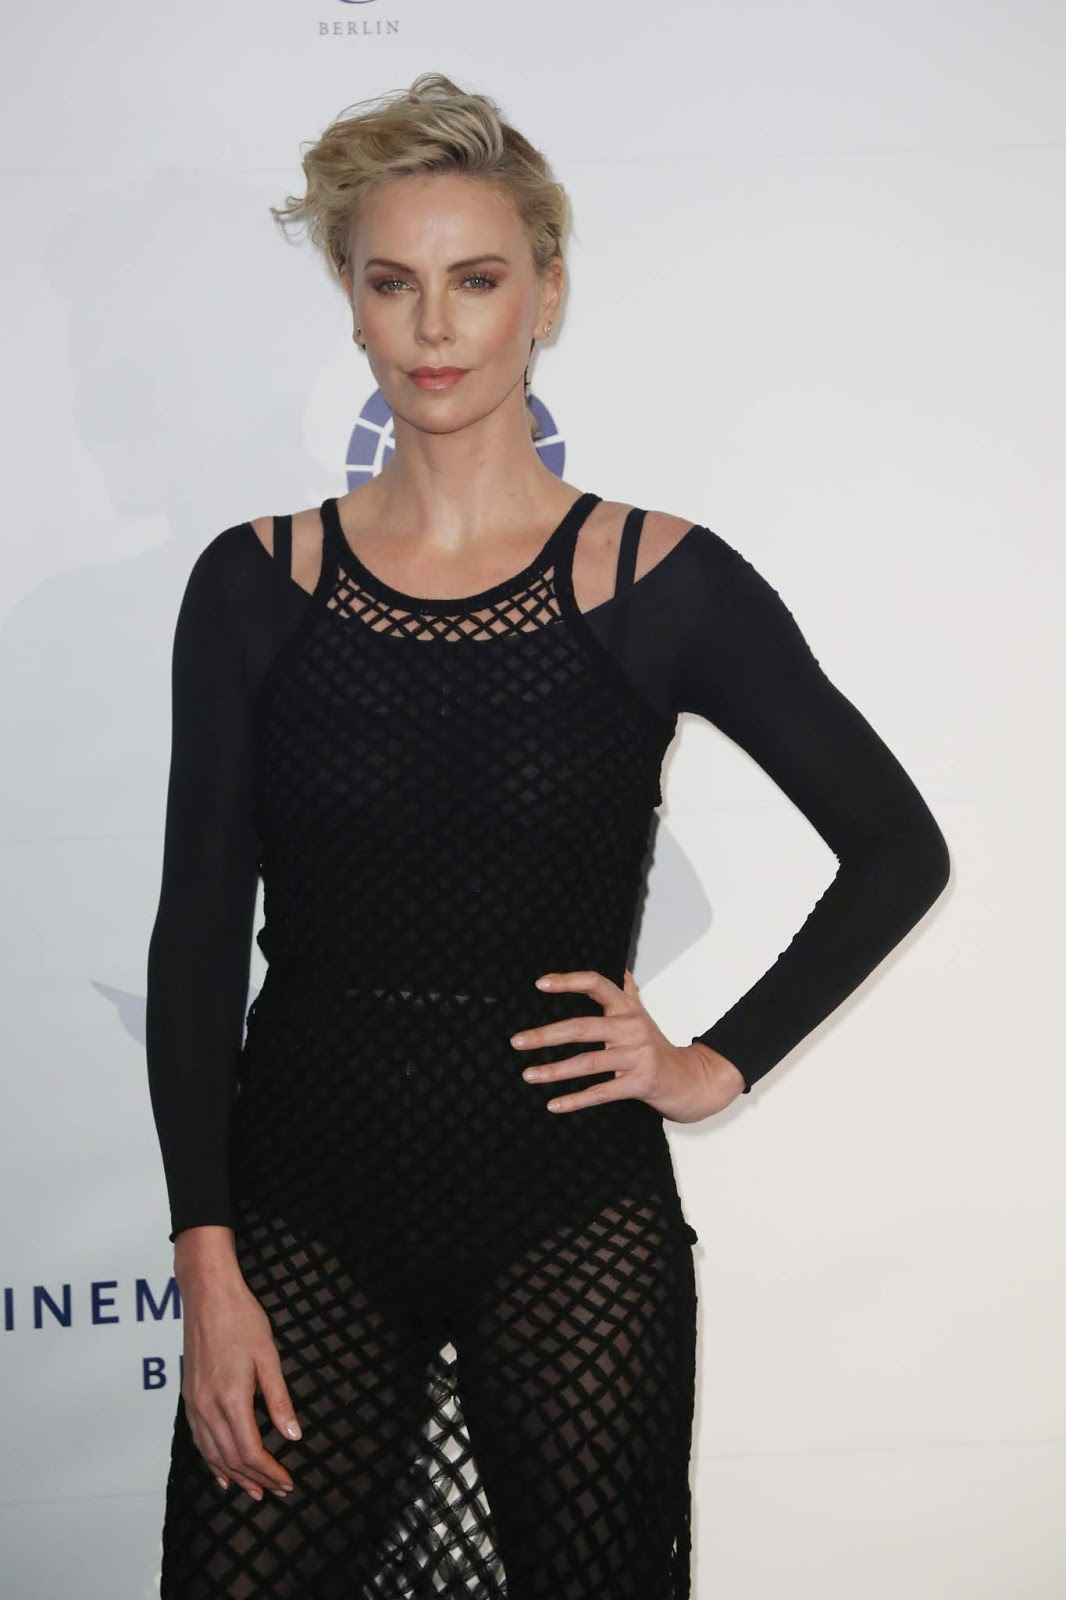 Charlize Theron - Cinema For Peace International Committee & Nominee Dinner in Berlin, Germany